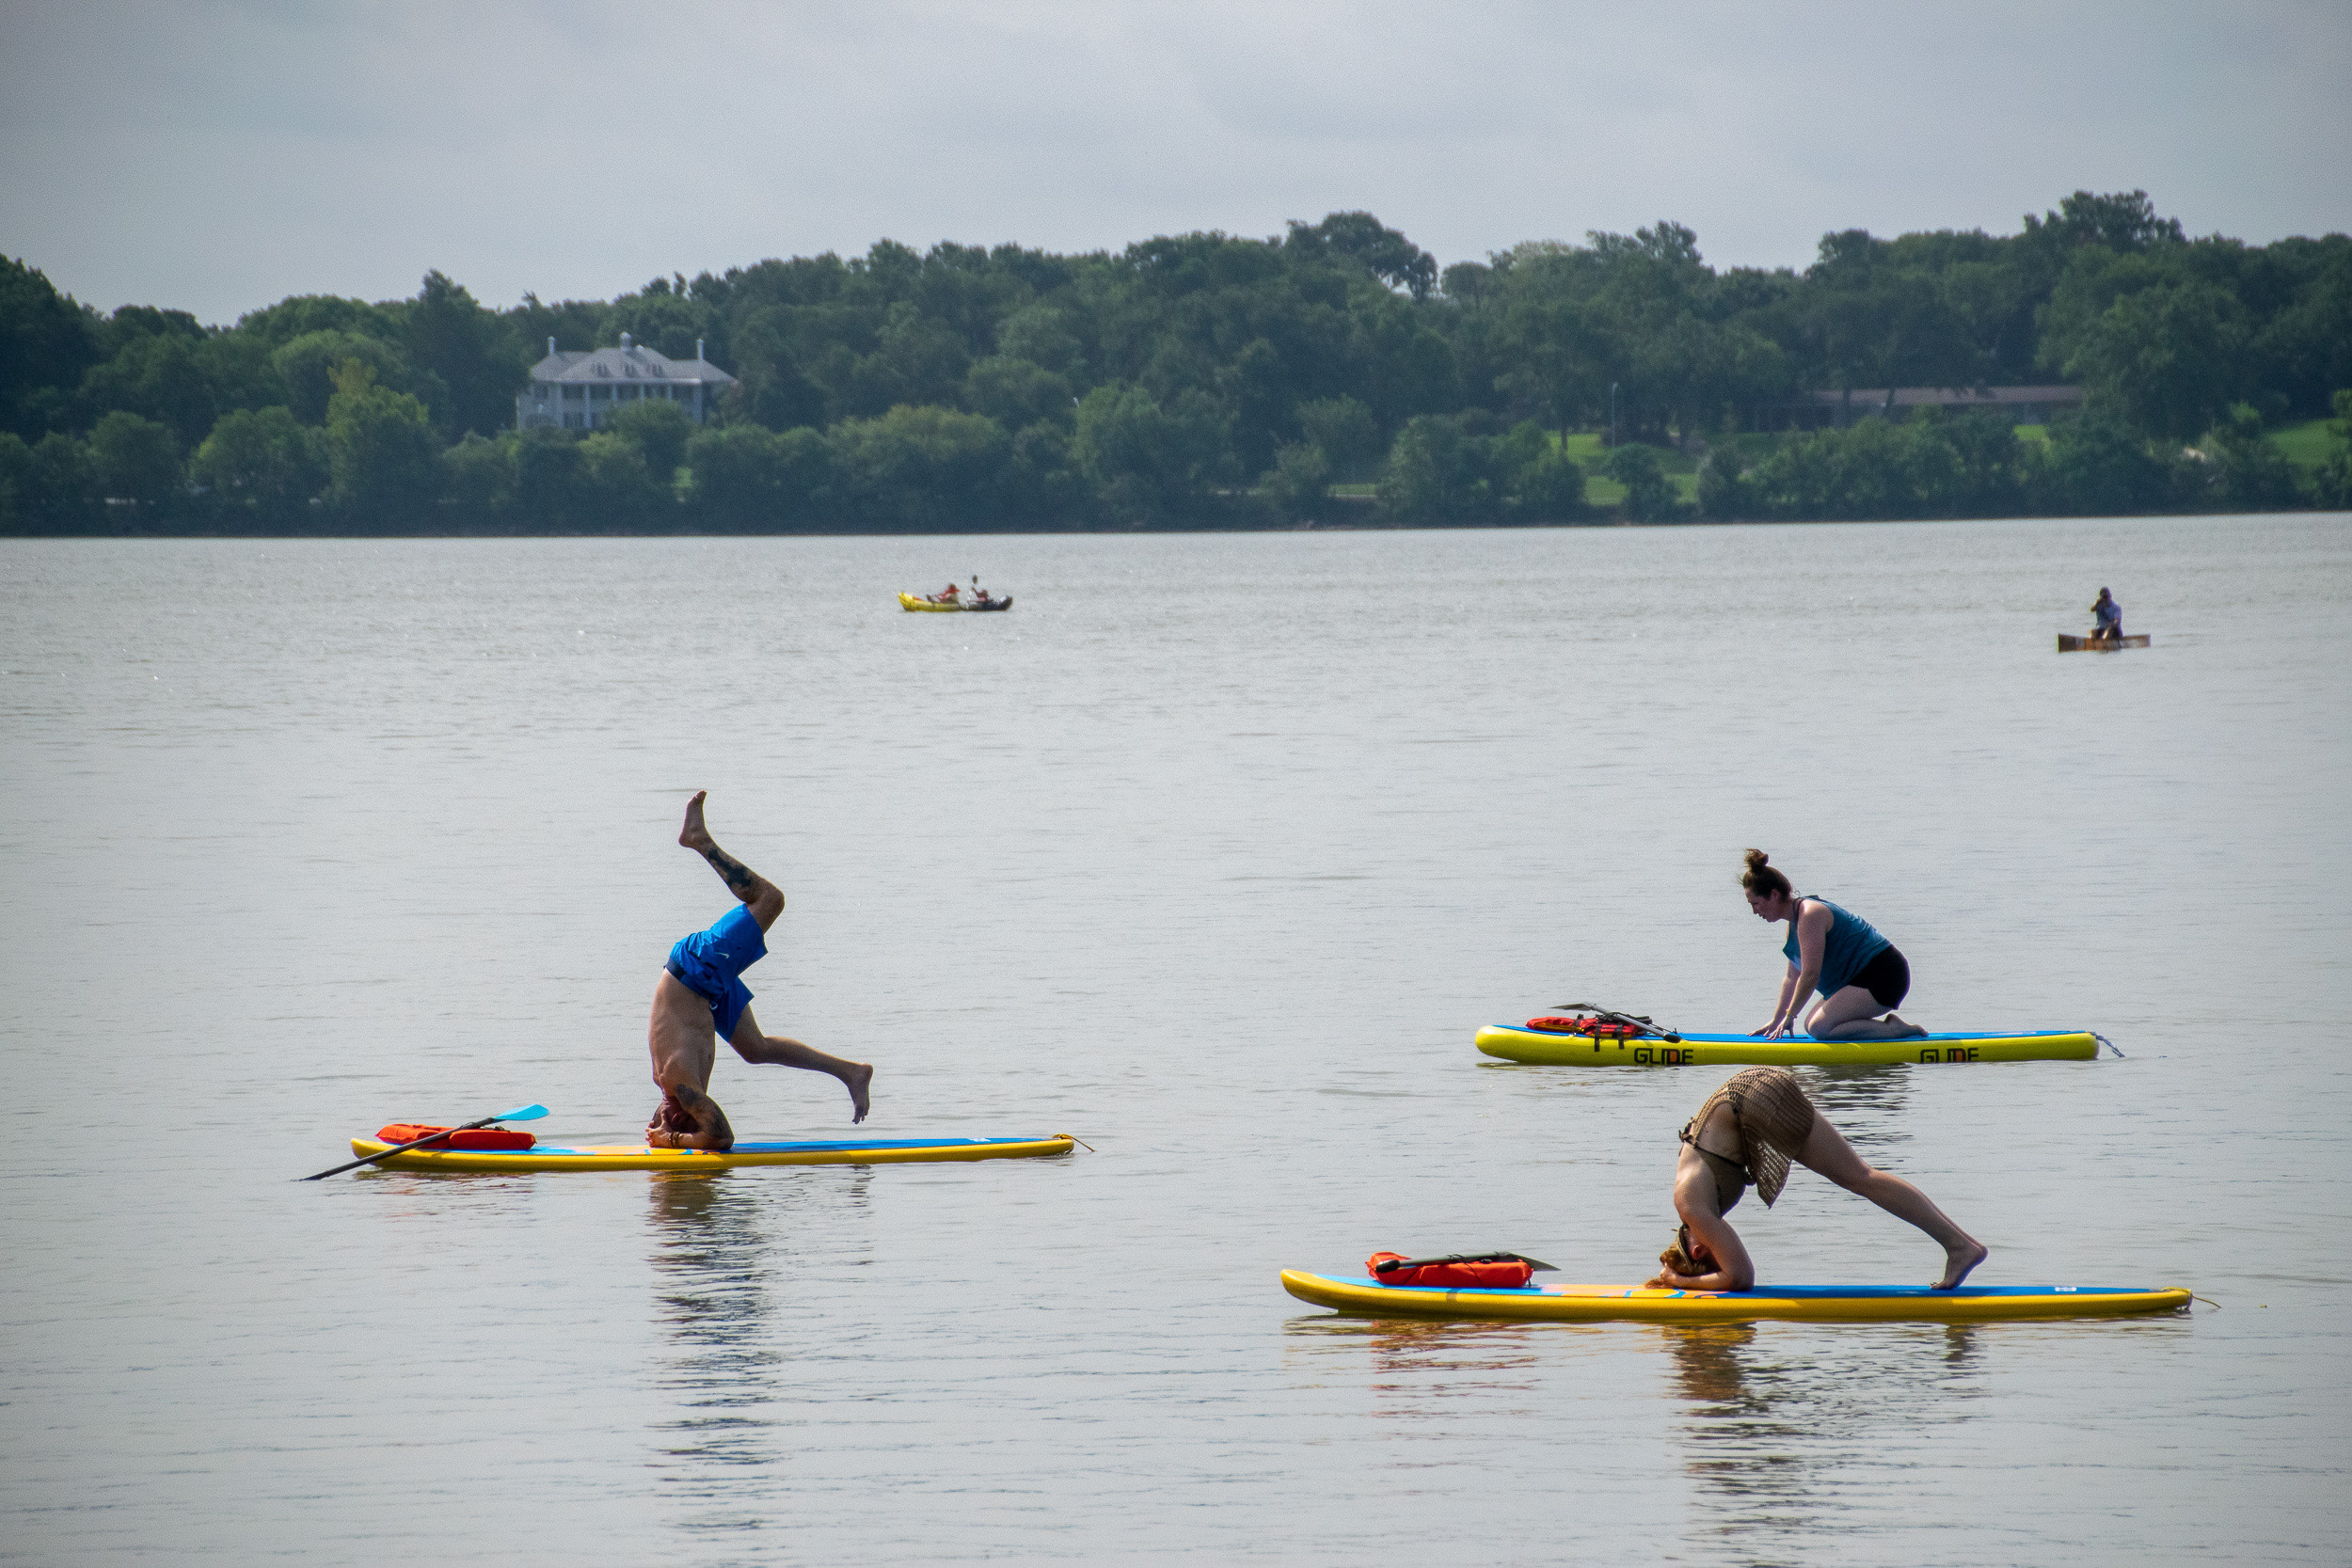 Yogis attempt kicking into headstands while balancing on stand up paddle boards on White Rock Lake in Dallas.